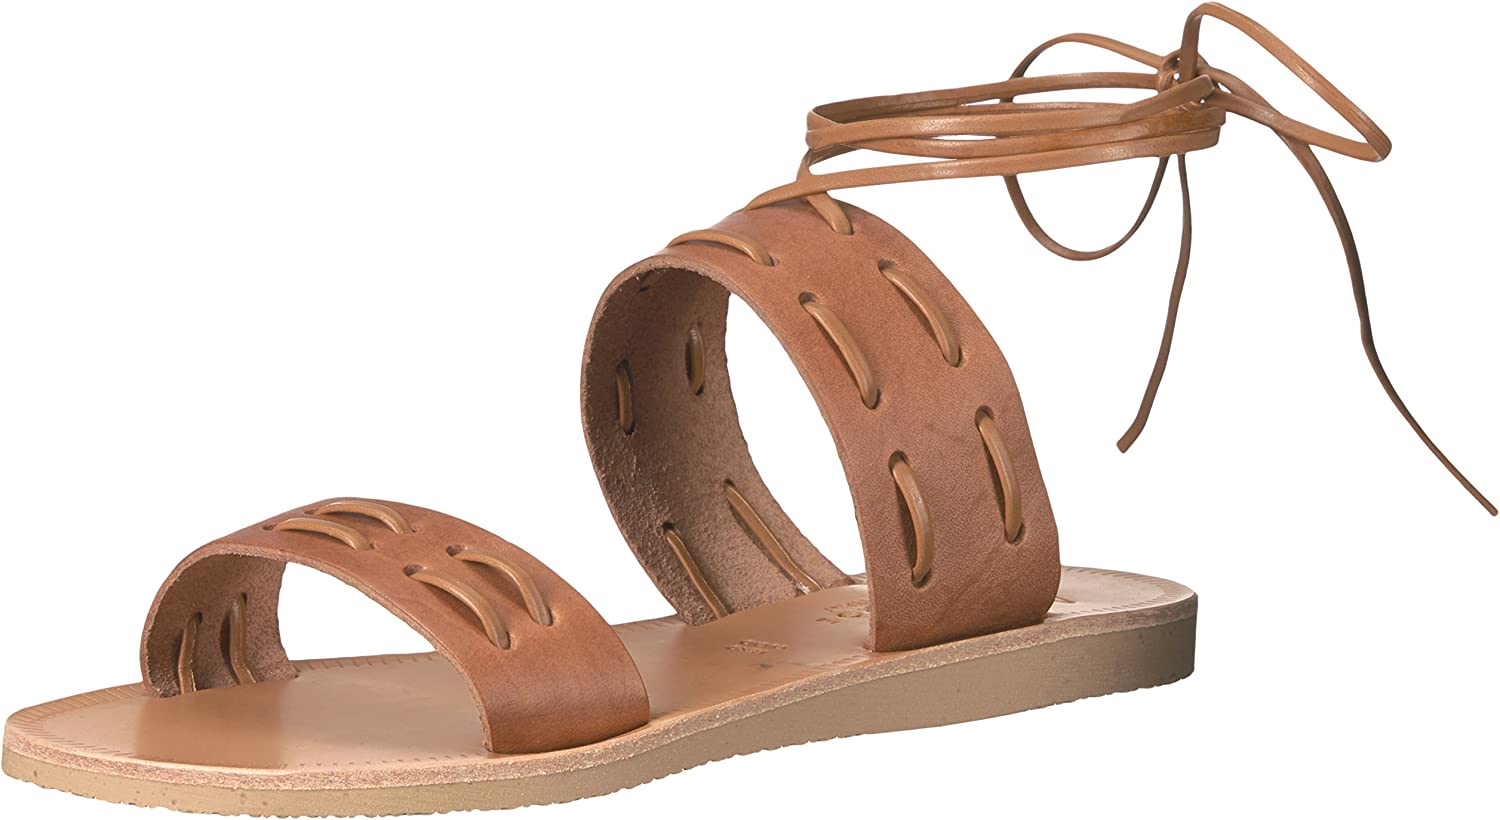 Joie Womens Prisca Flat Sandal